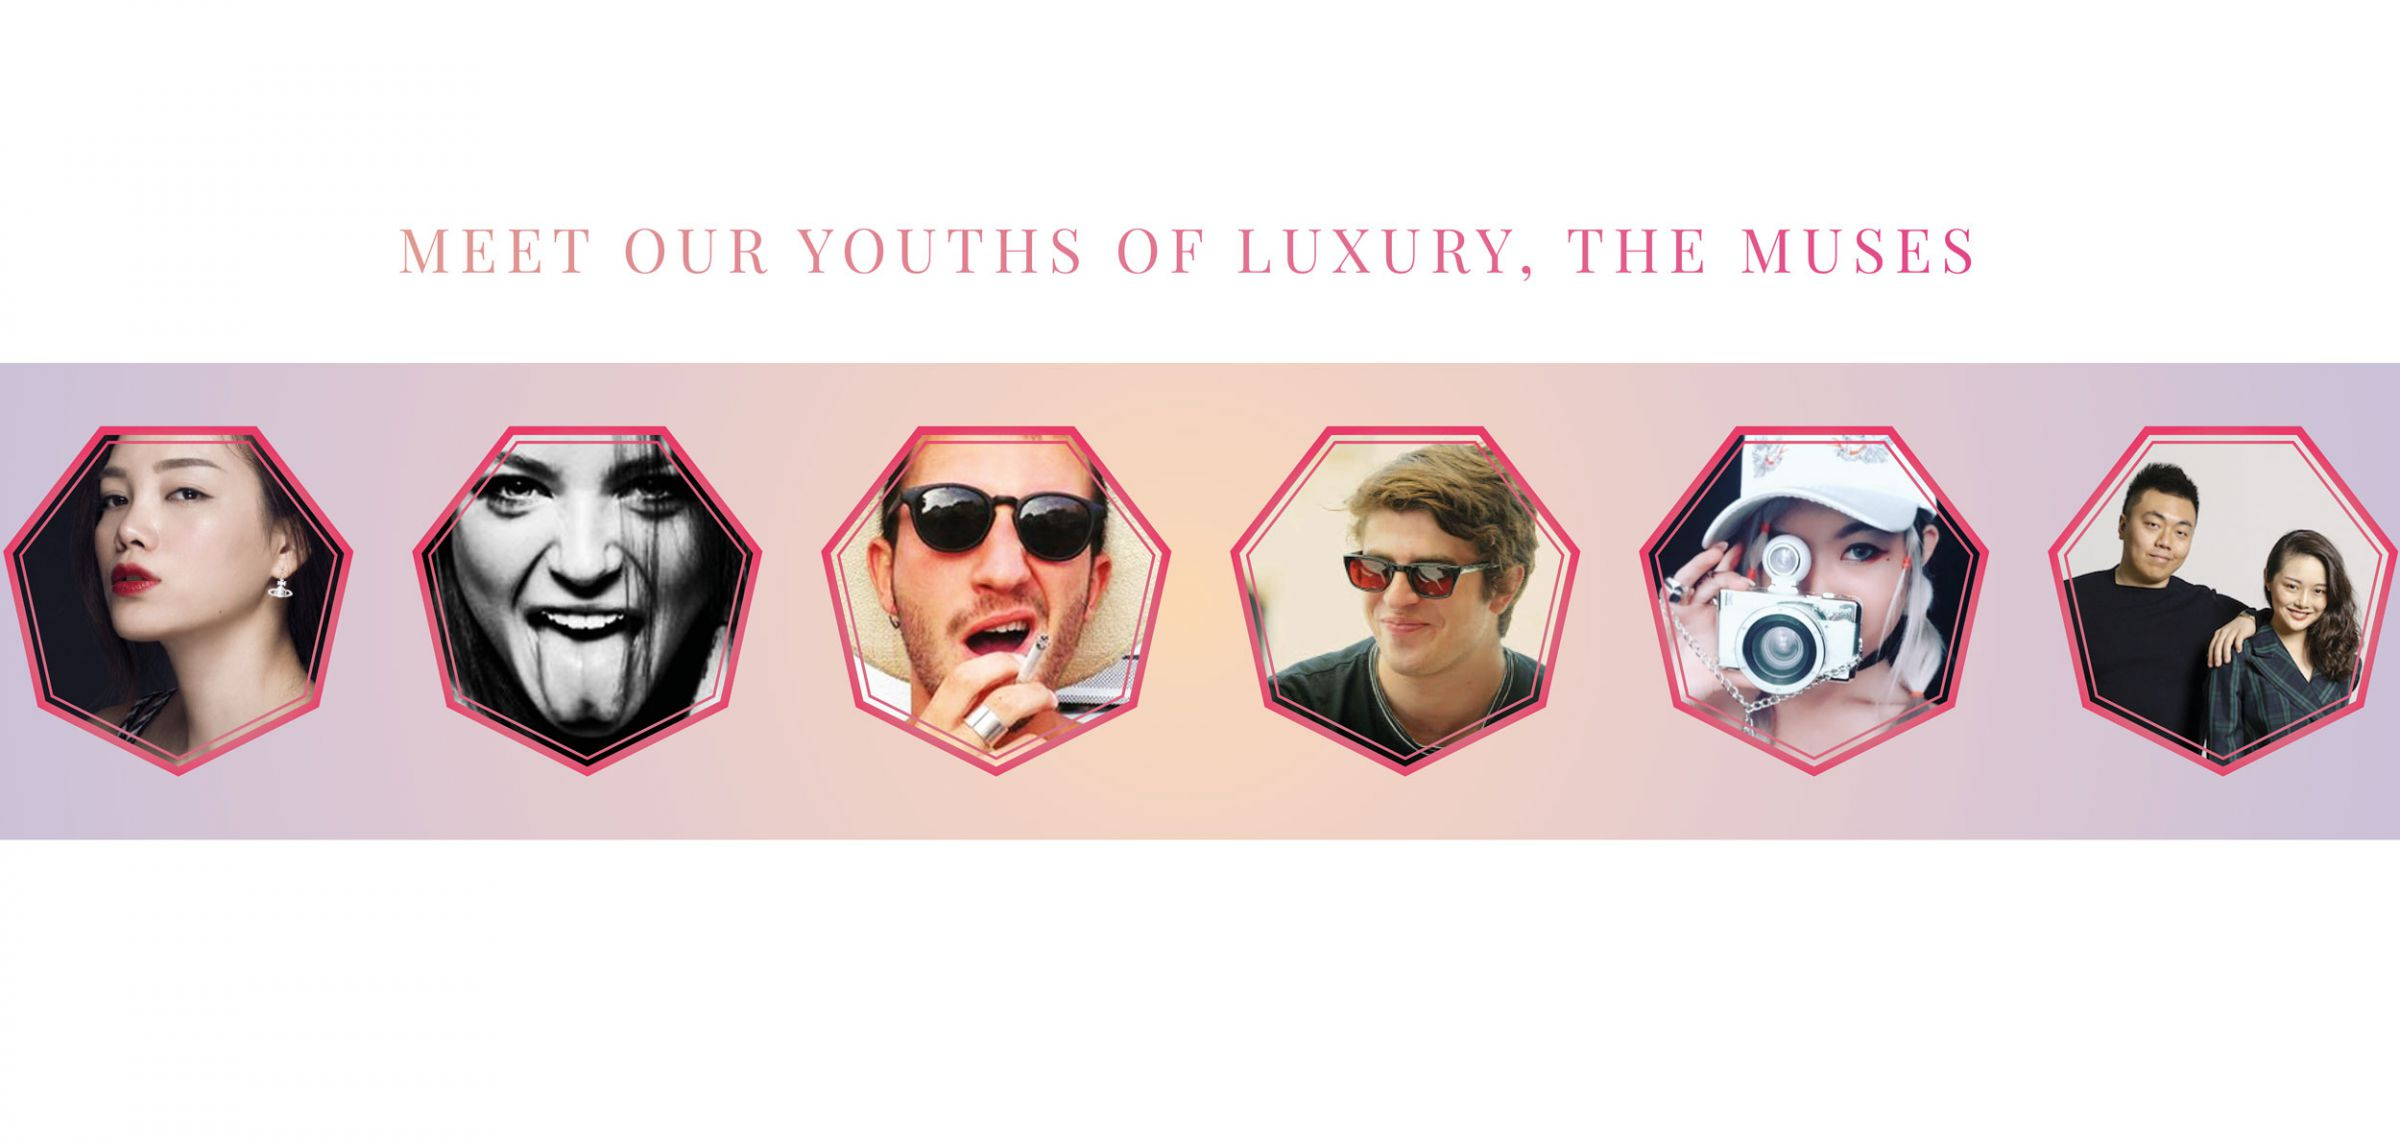 muses of youth of luxury